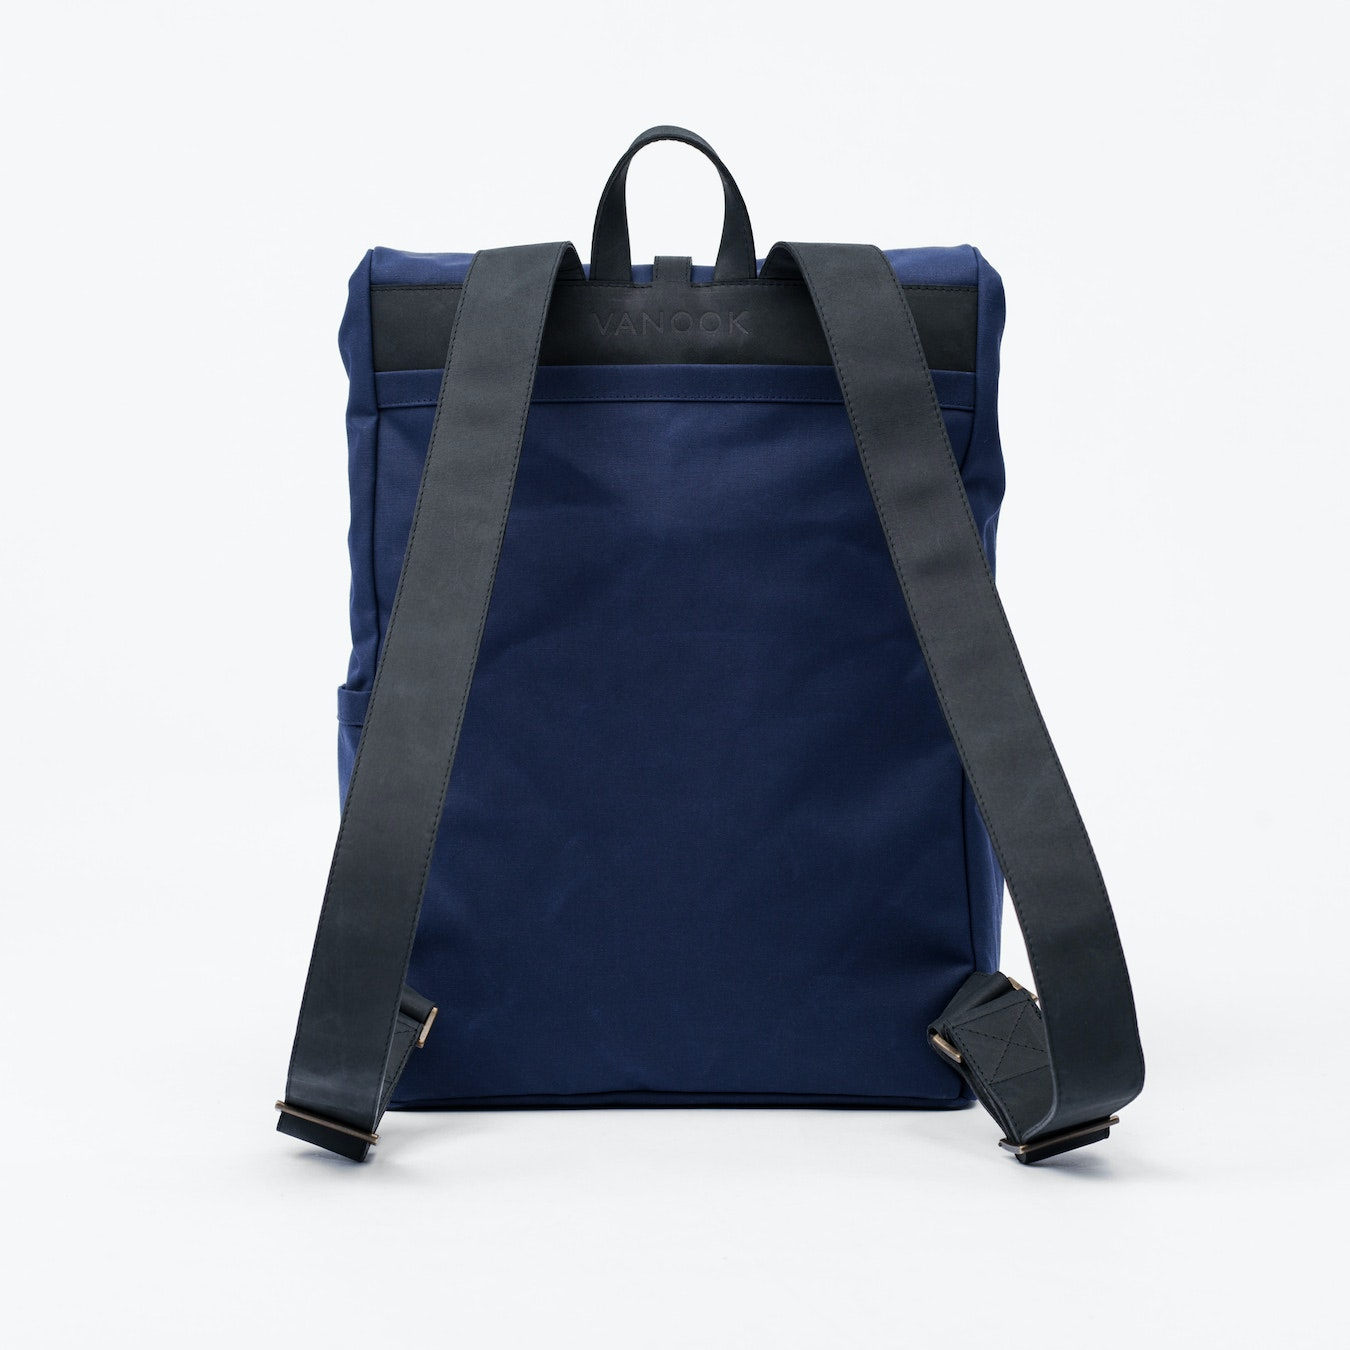 bbaaf47662 Backpack in Navy and Charcoal by Vanook - Fy